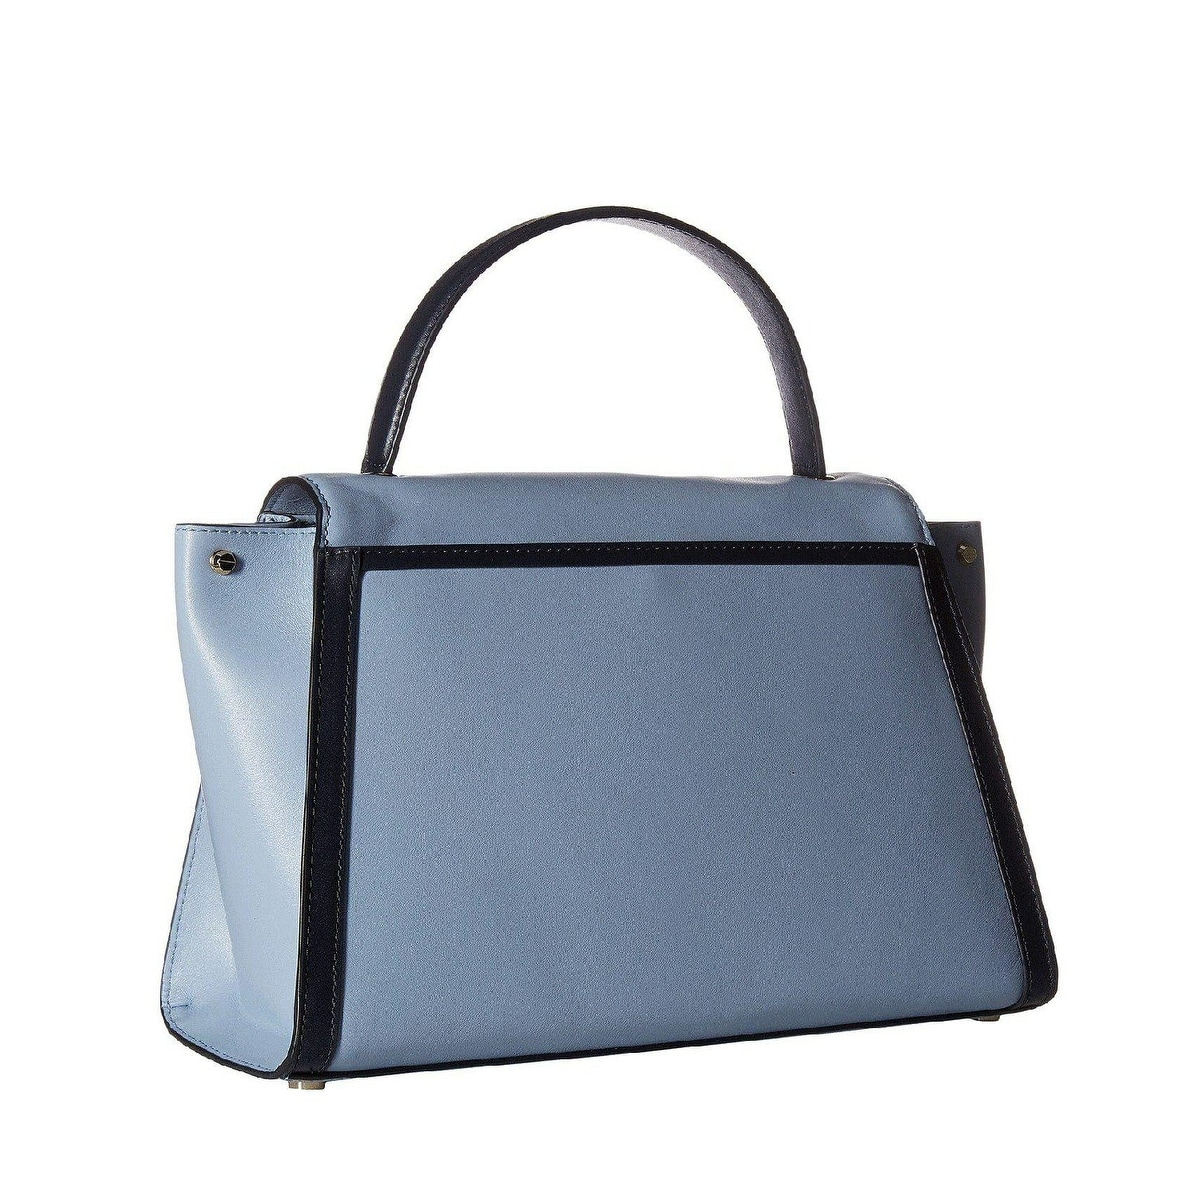 eb7bfe4ac415 Shop MICHAEL Michael Kors Whitney Large Leather Satchel Pale Blue/Admiral -  Free Shipping Today - Overstock - 27296243